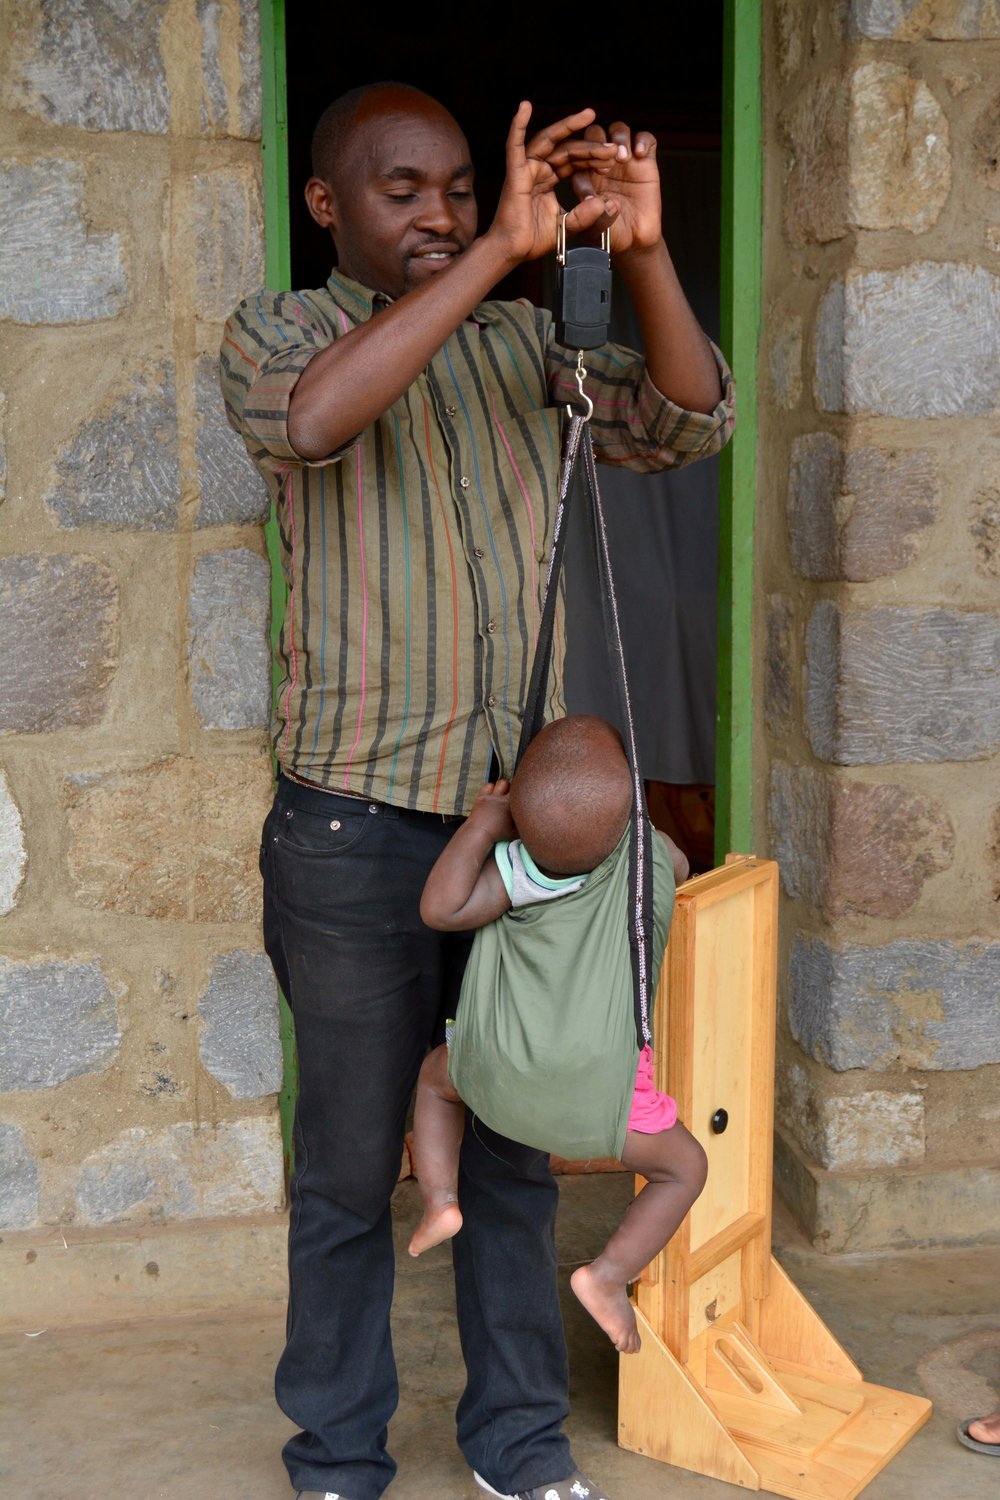 Monitoring and Evaluation agent Donation helps weigh children.